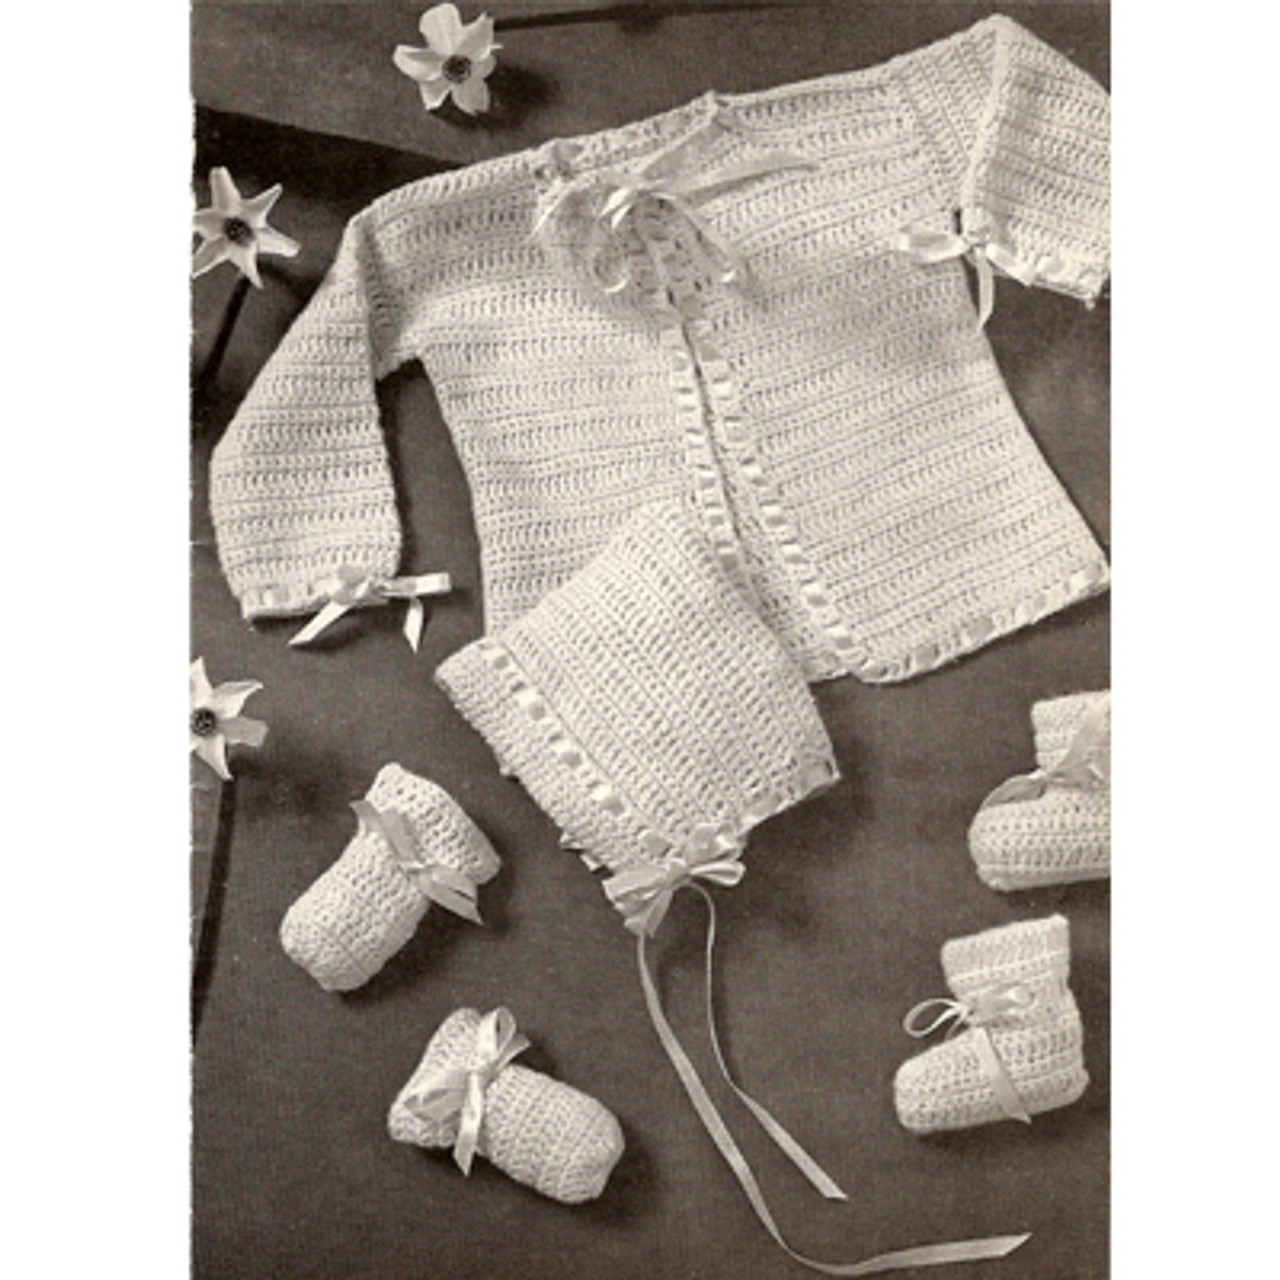 4 piece crochet baby set pattern